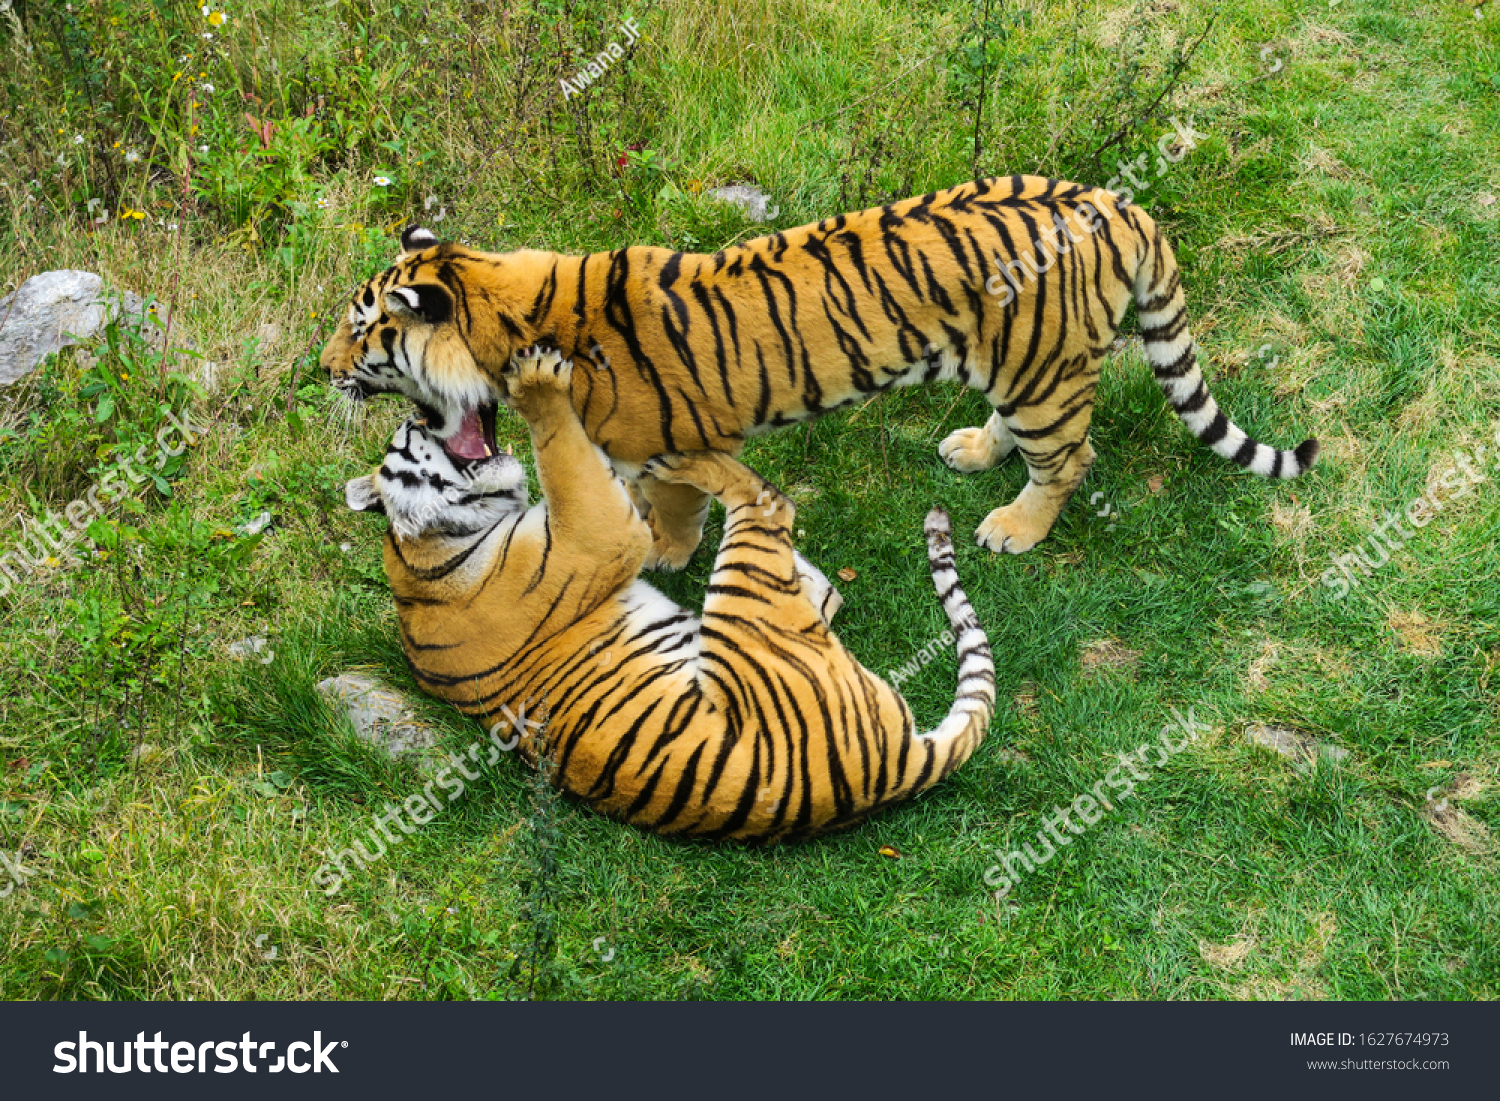 Two siberian tigers playing together